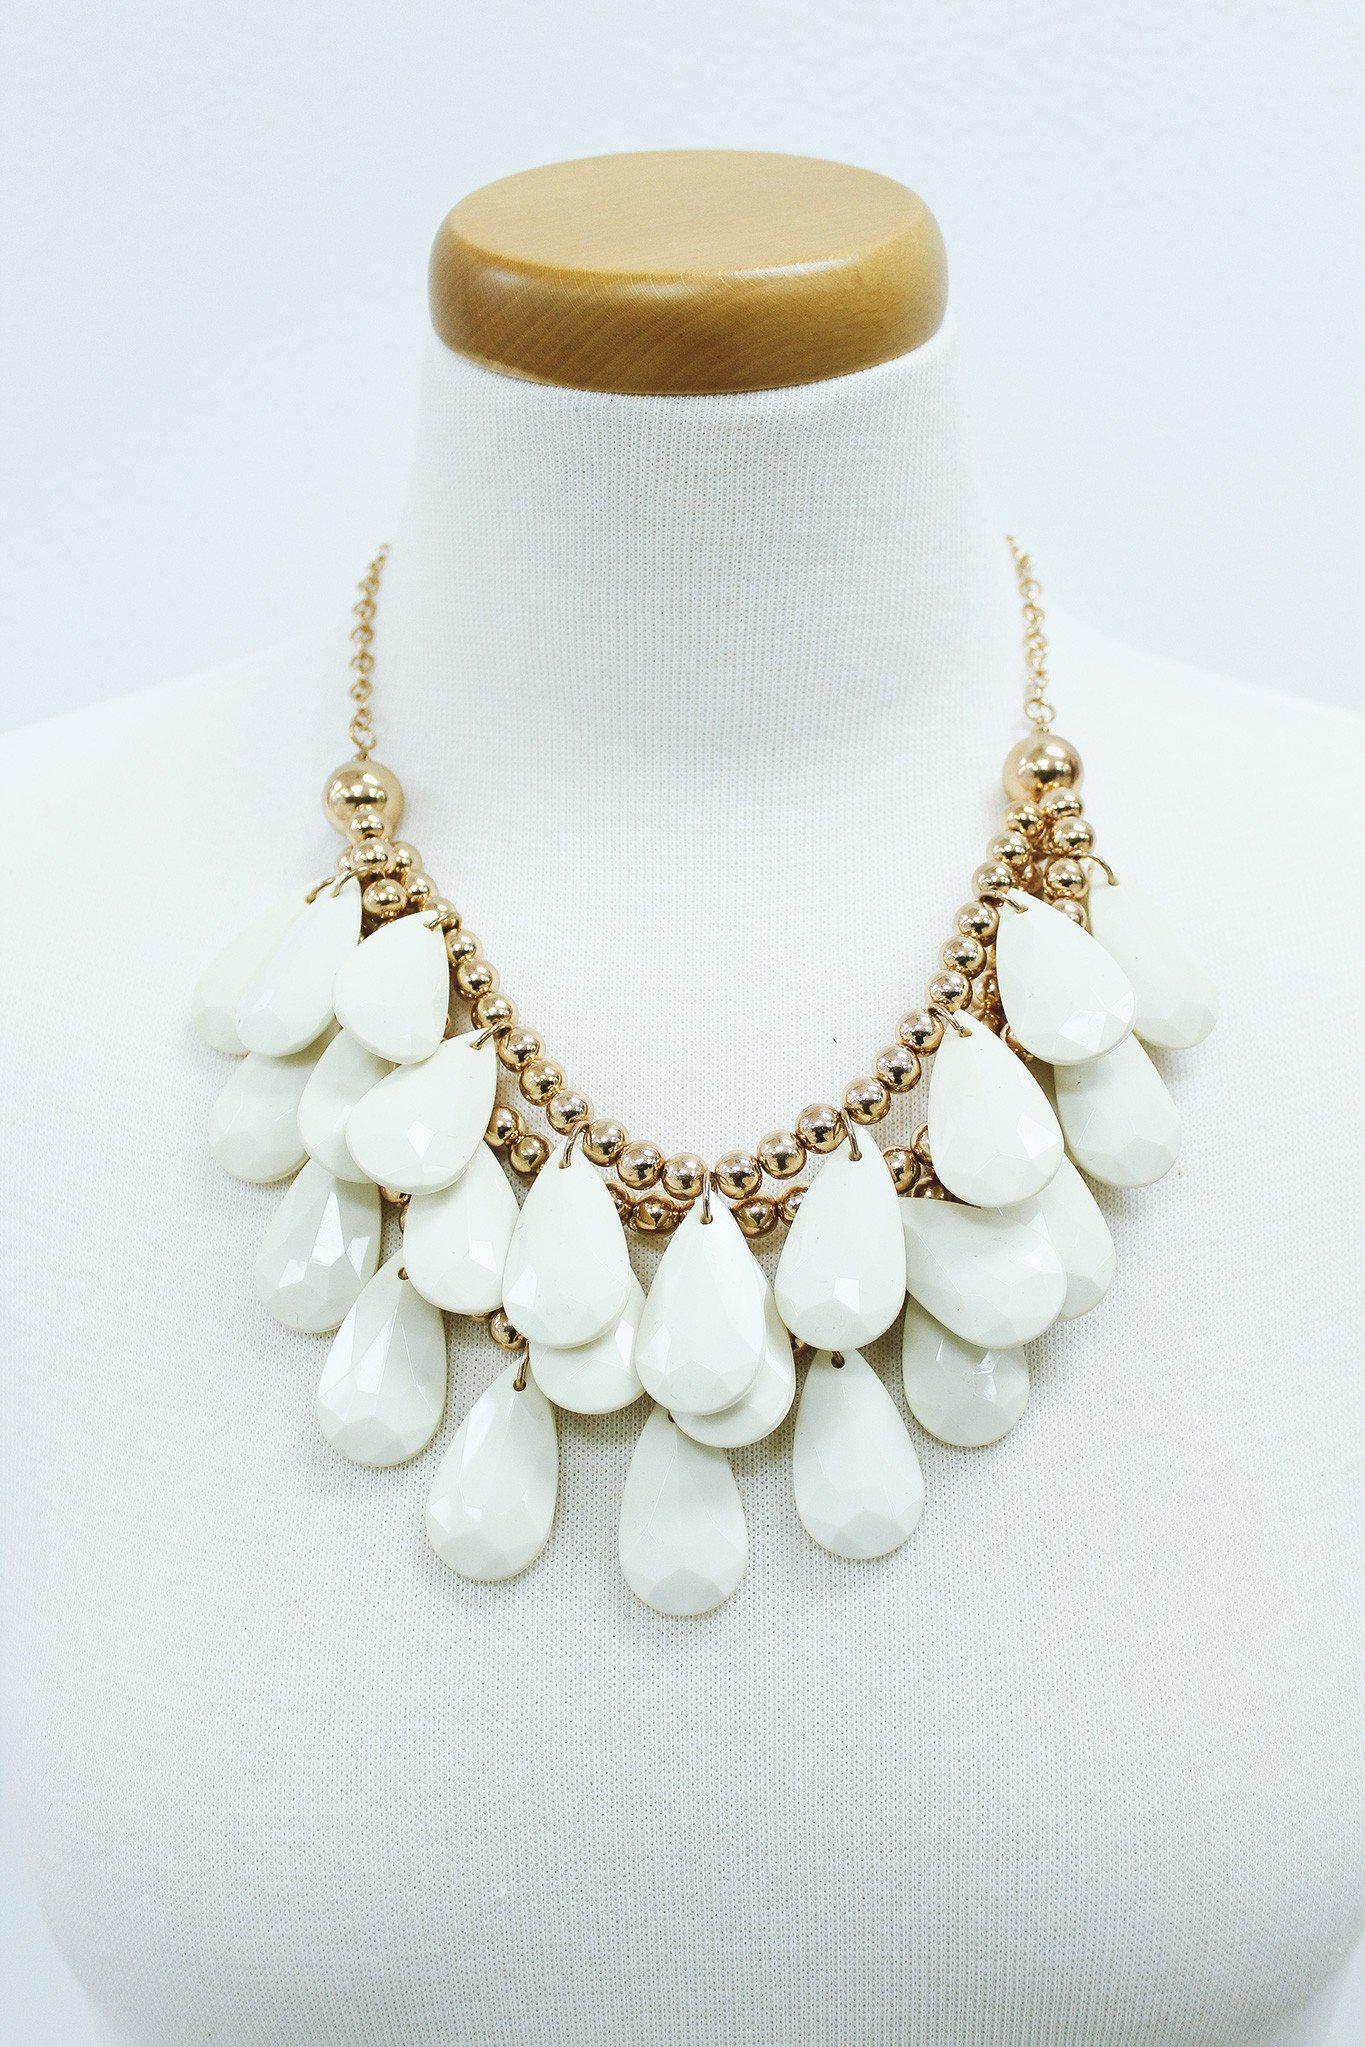 ivory and gold layered teardrop beads necklace